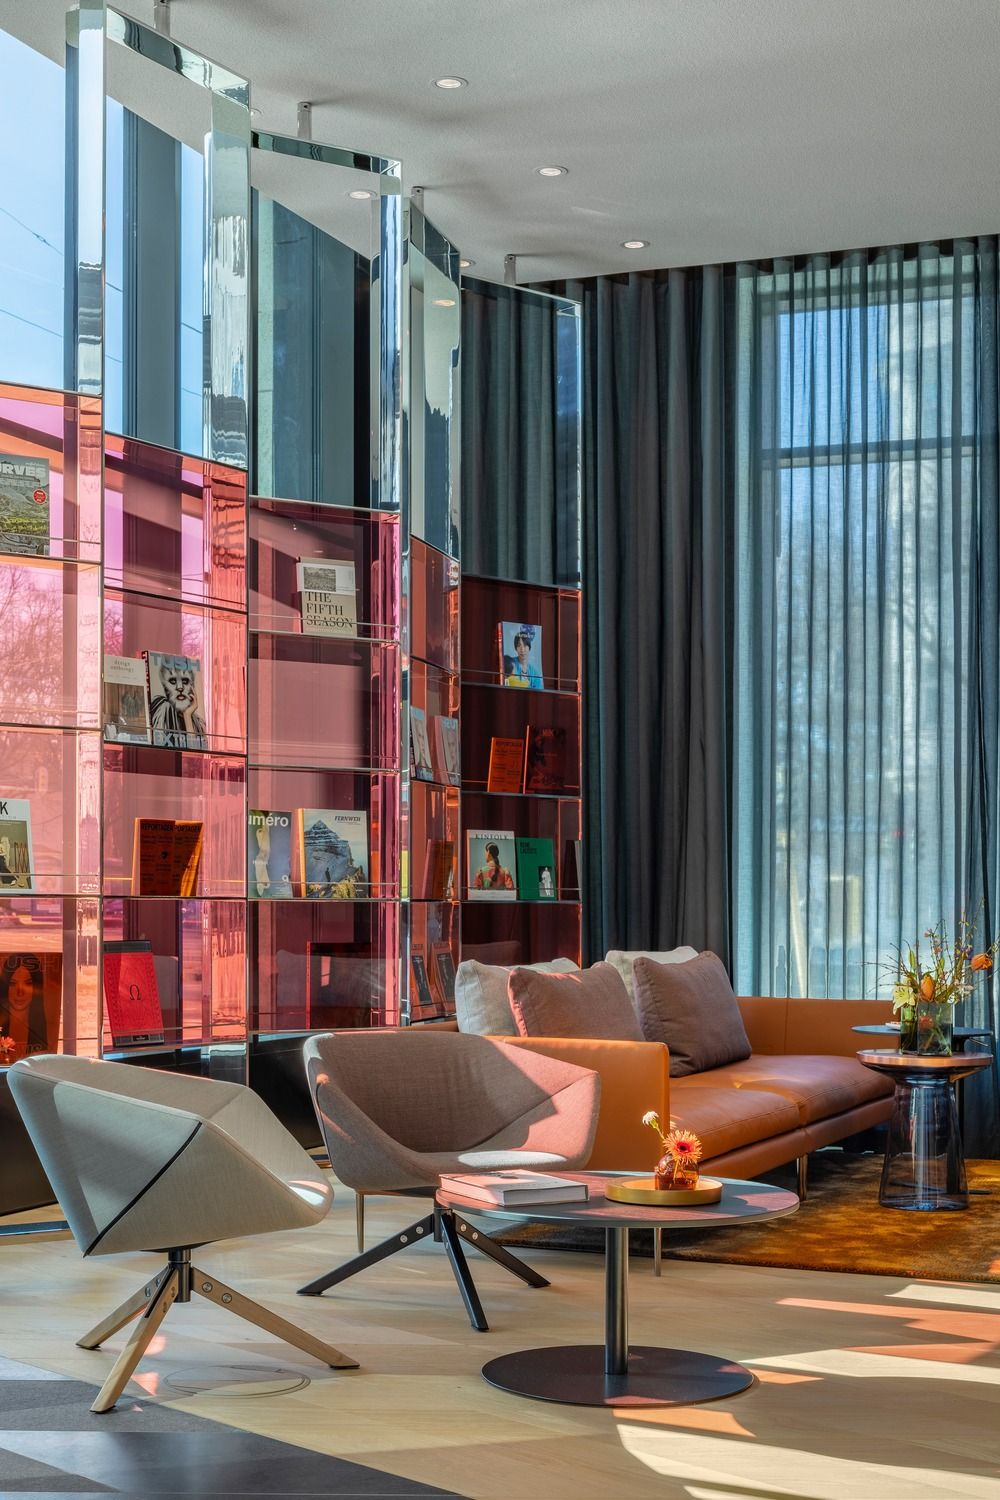 Hotel andaz in schwabing is the district s newest addition for Design hotel schwabing